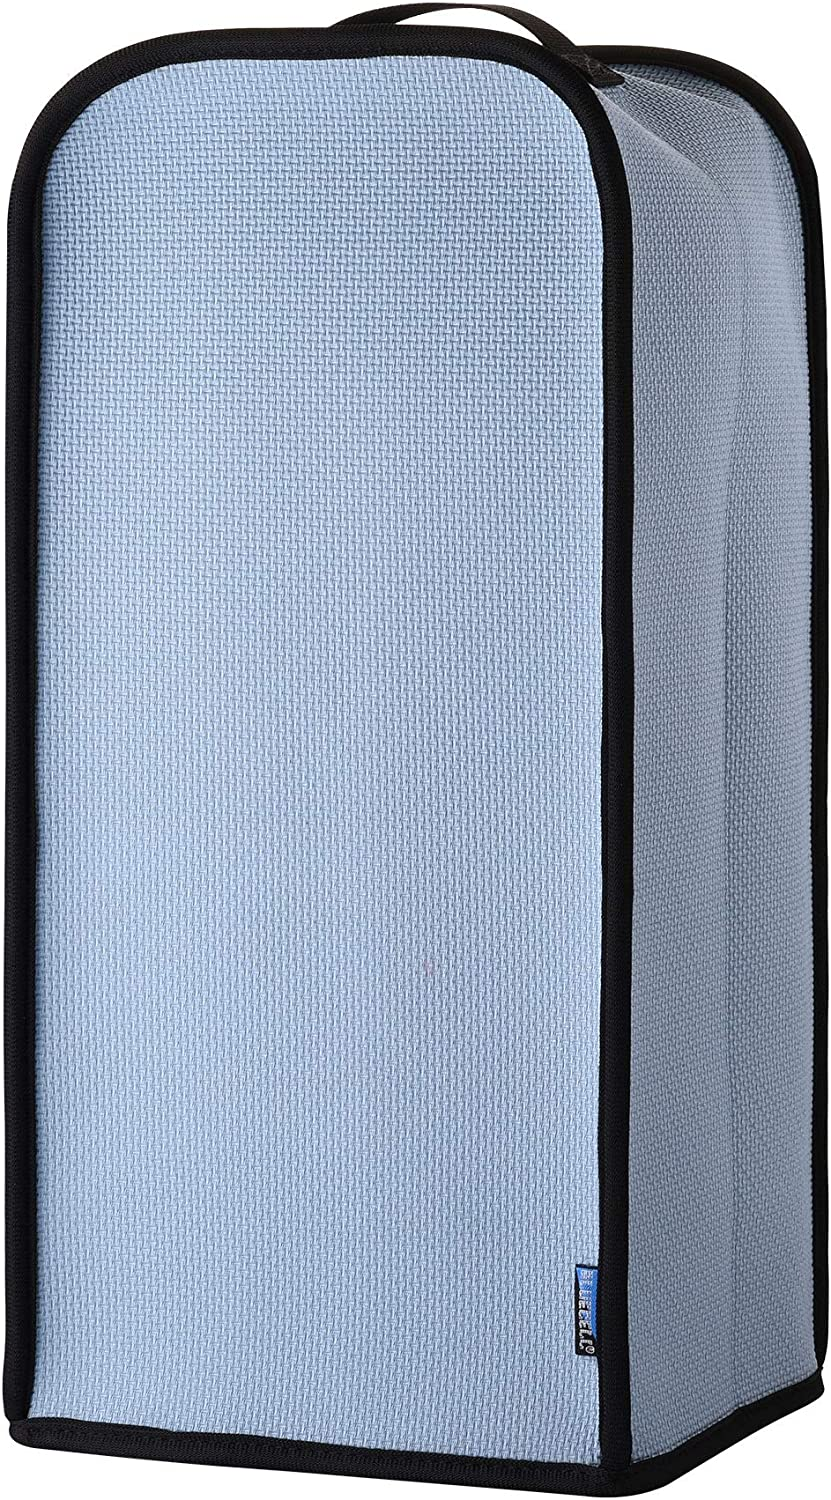 Bluecell Blender Dust Cover Home Appliance Blender Neoprene Dust Cover Fingerprint Protection (Light Blue)